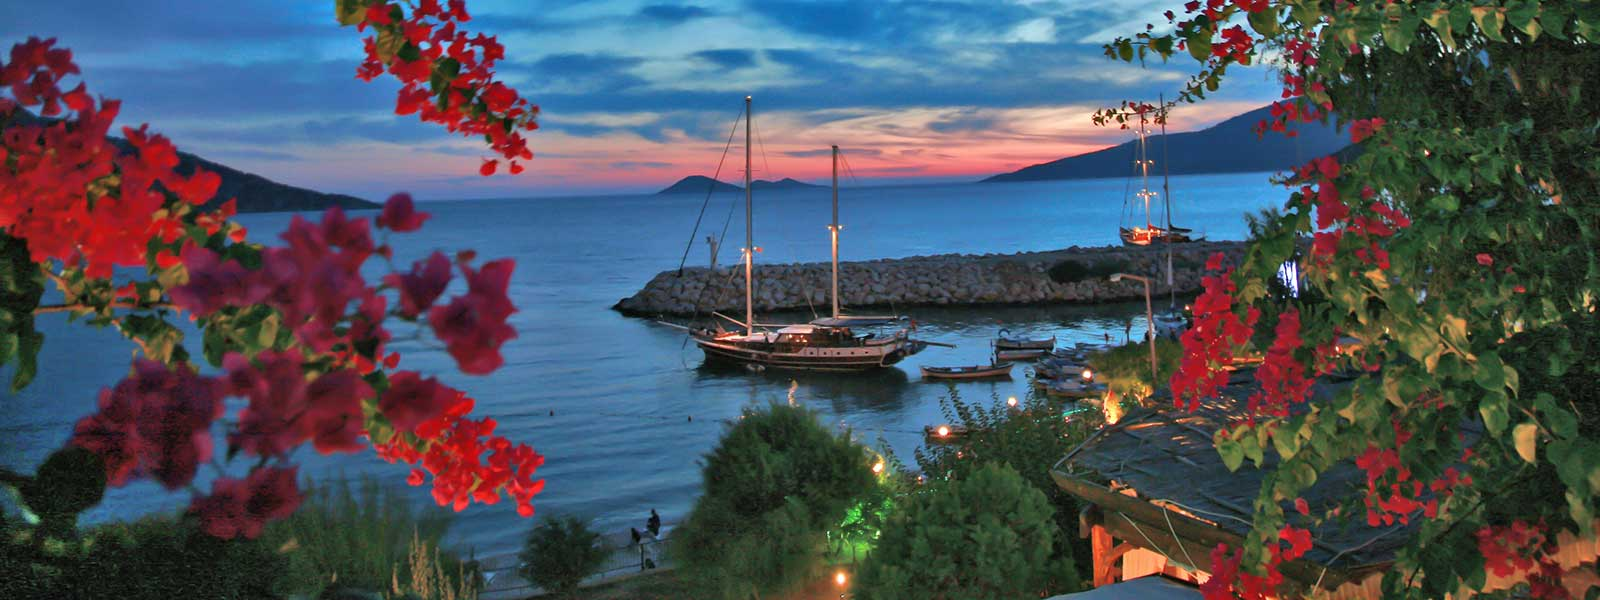 Luxury Mediterranean Hotels Turkey